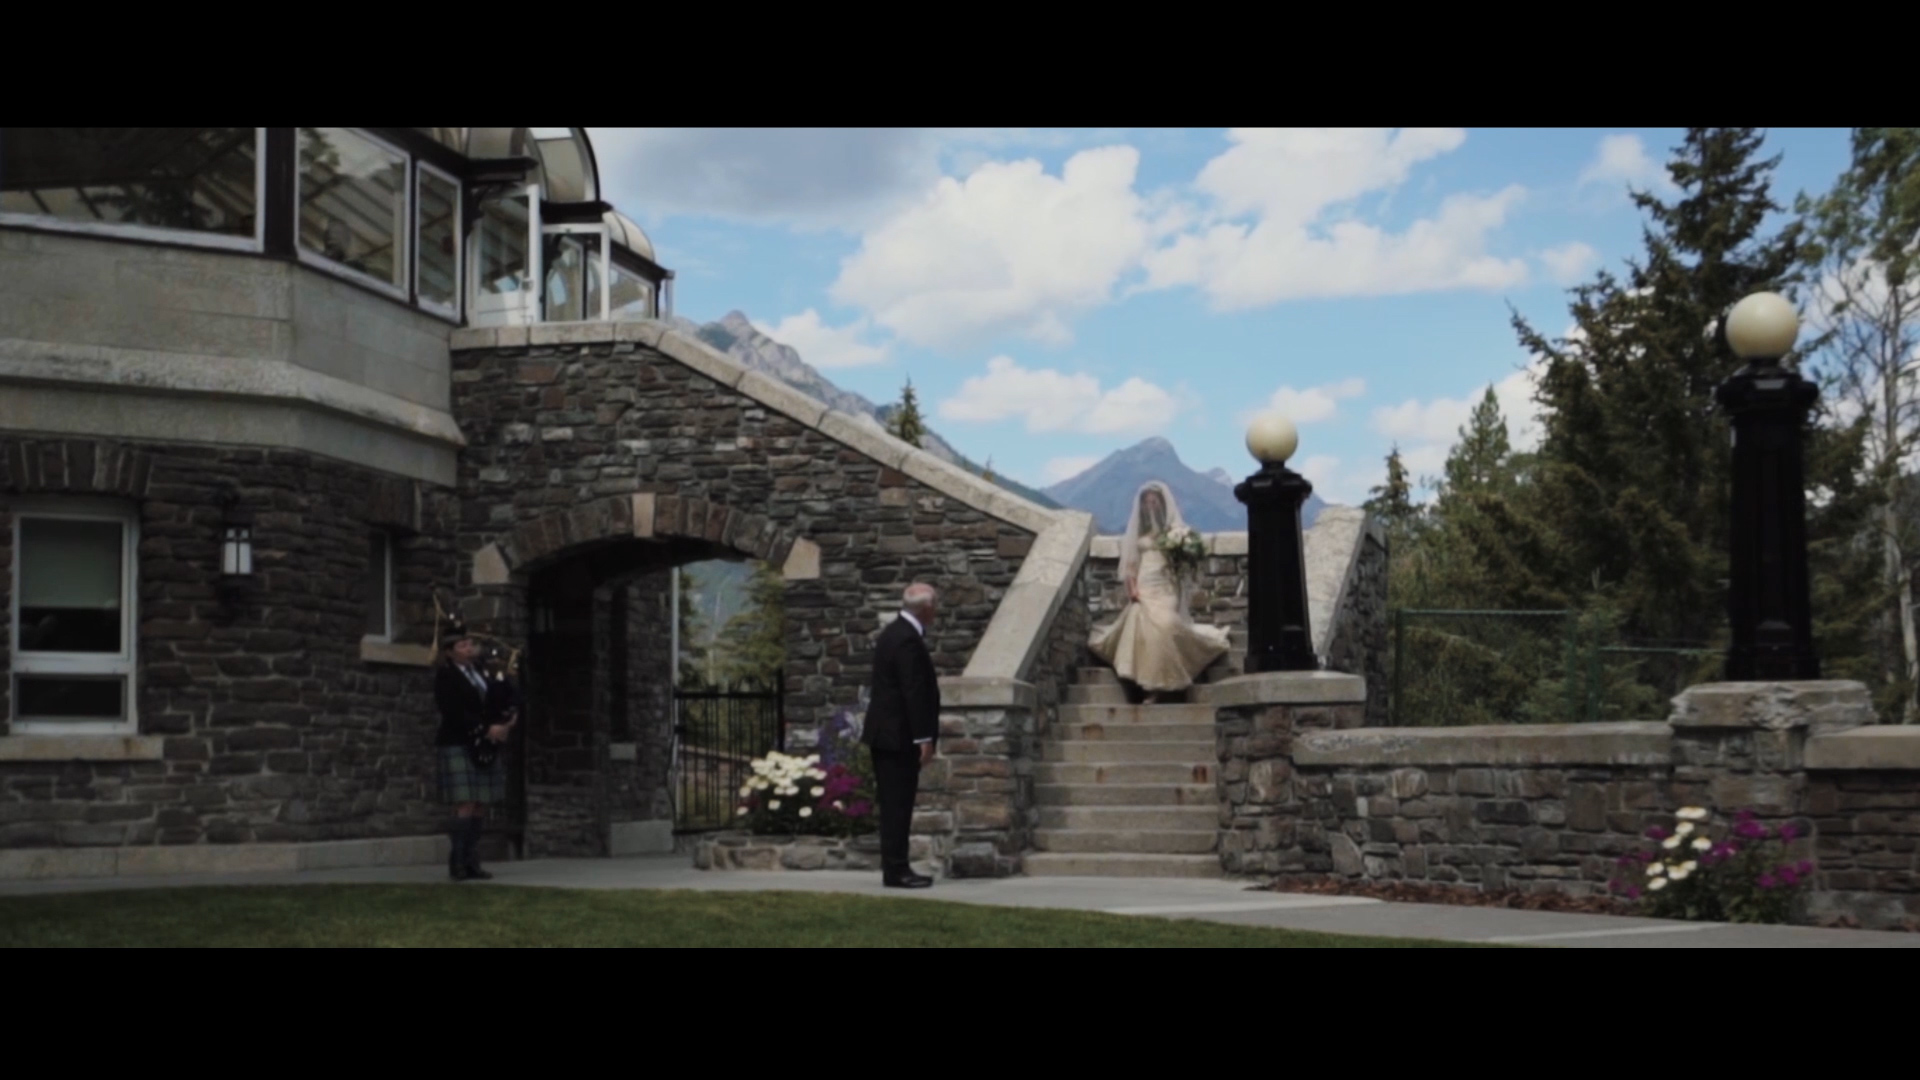 Ashley + Chris | Banff, Canada | Fairmont Banff Springs